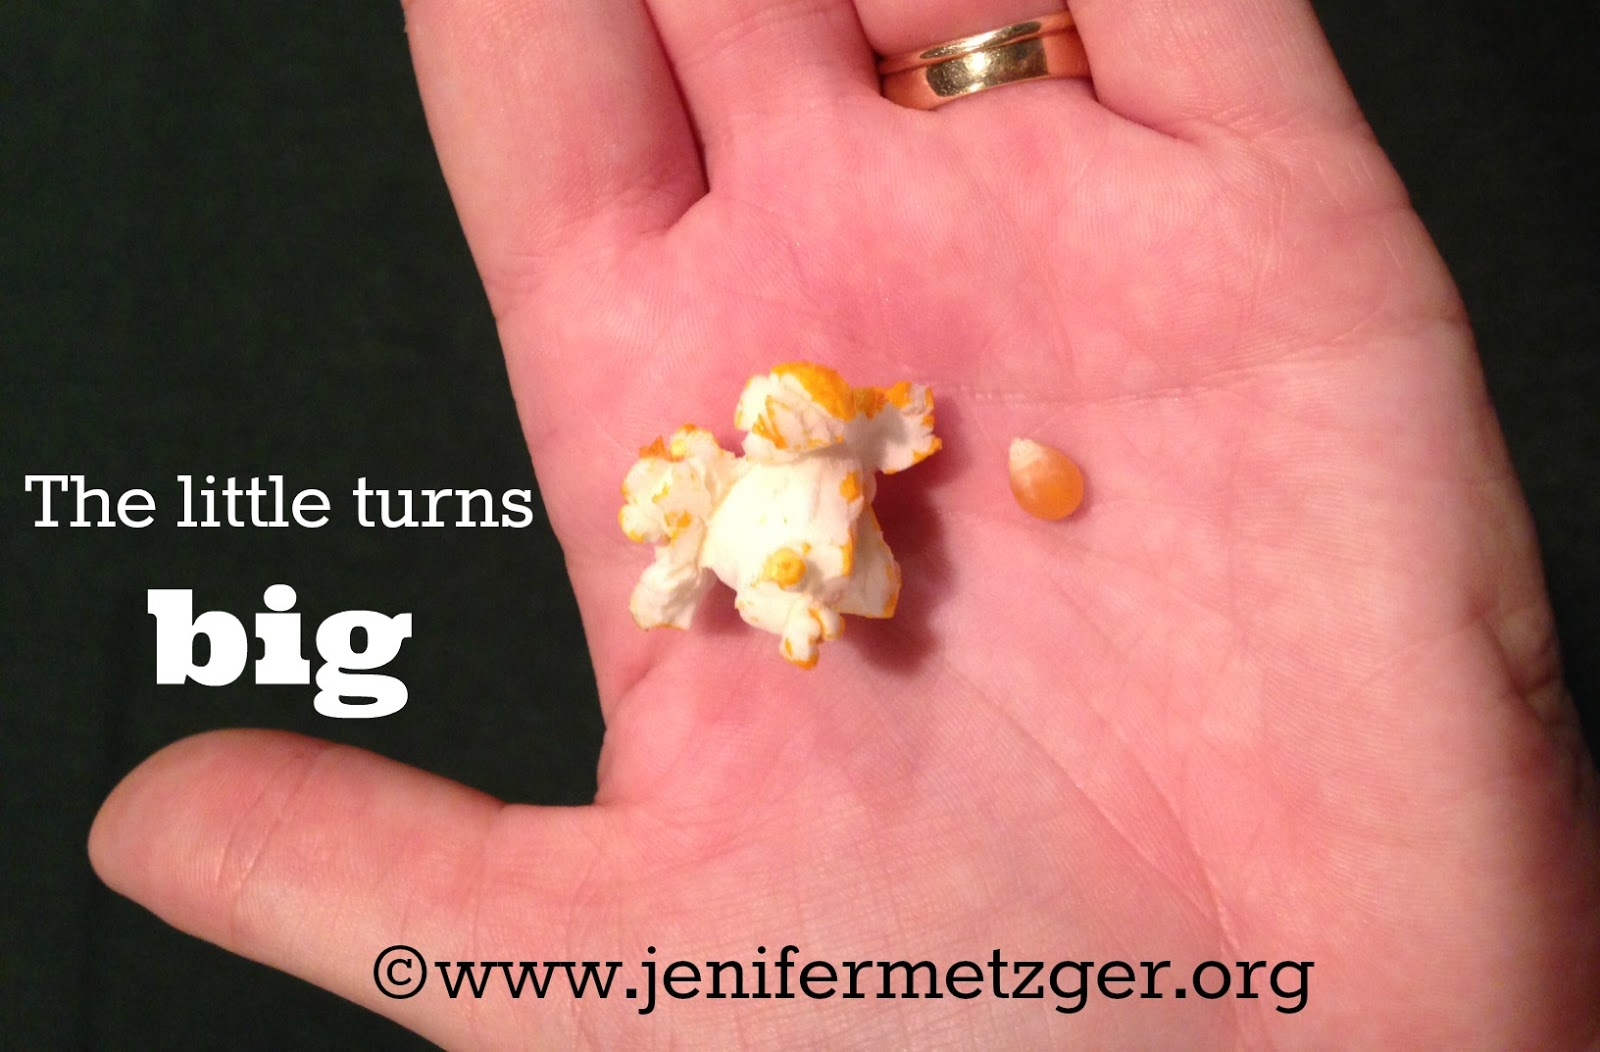 God can turn little things into big things. #encouragement #inspiration #blessings